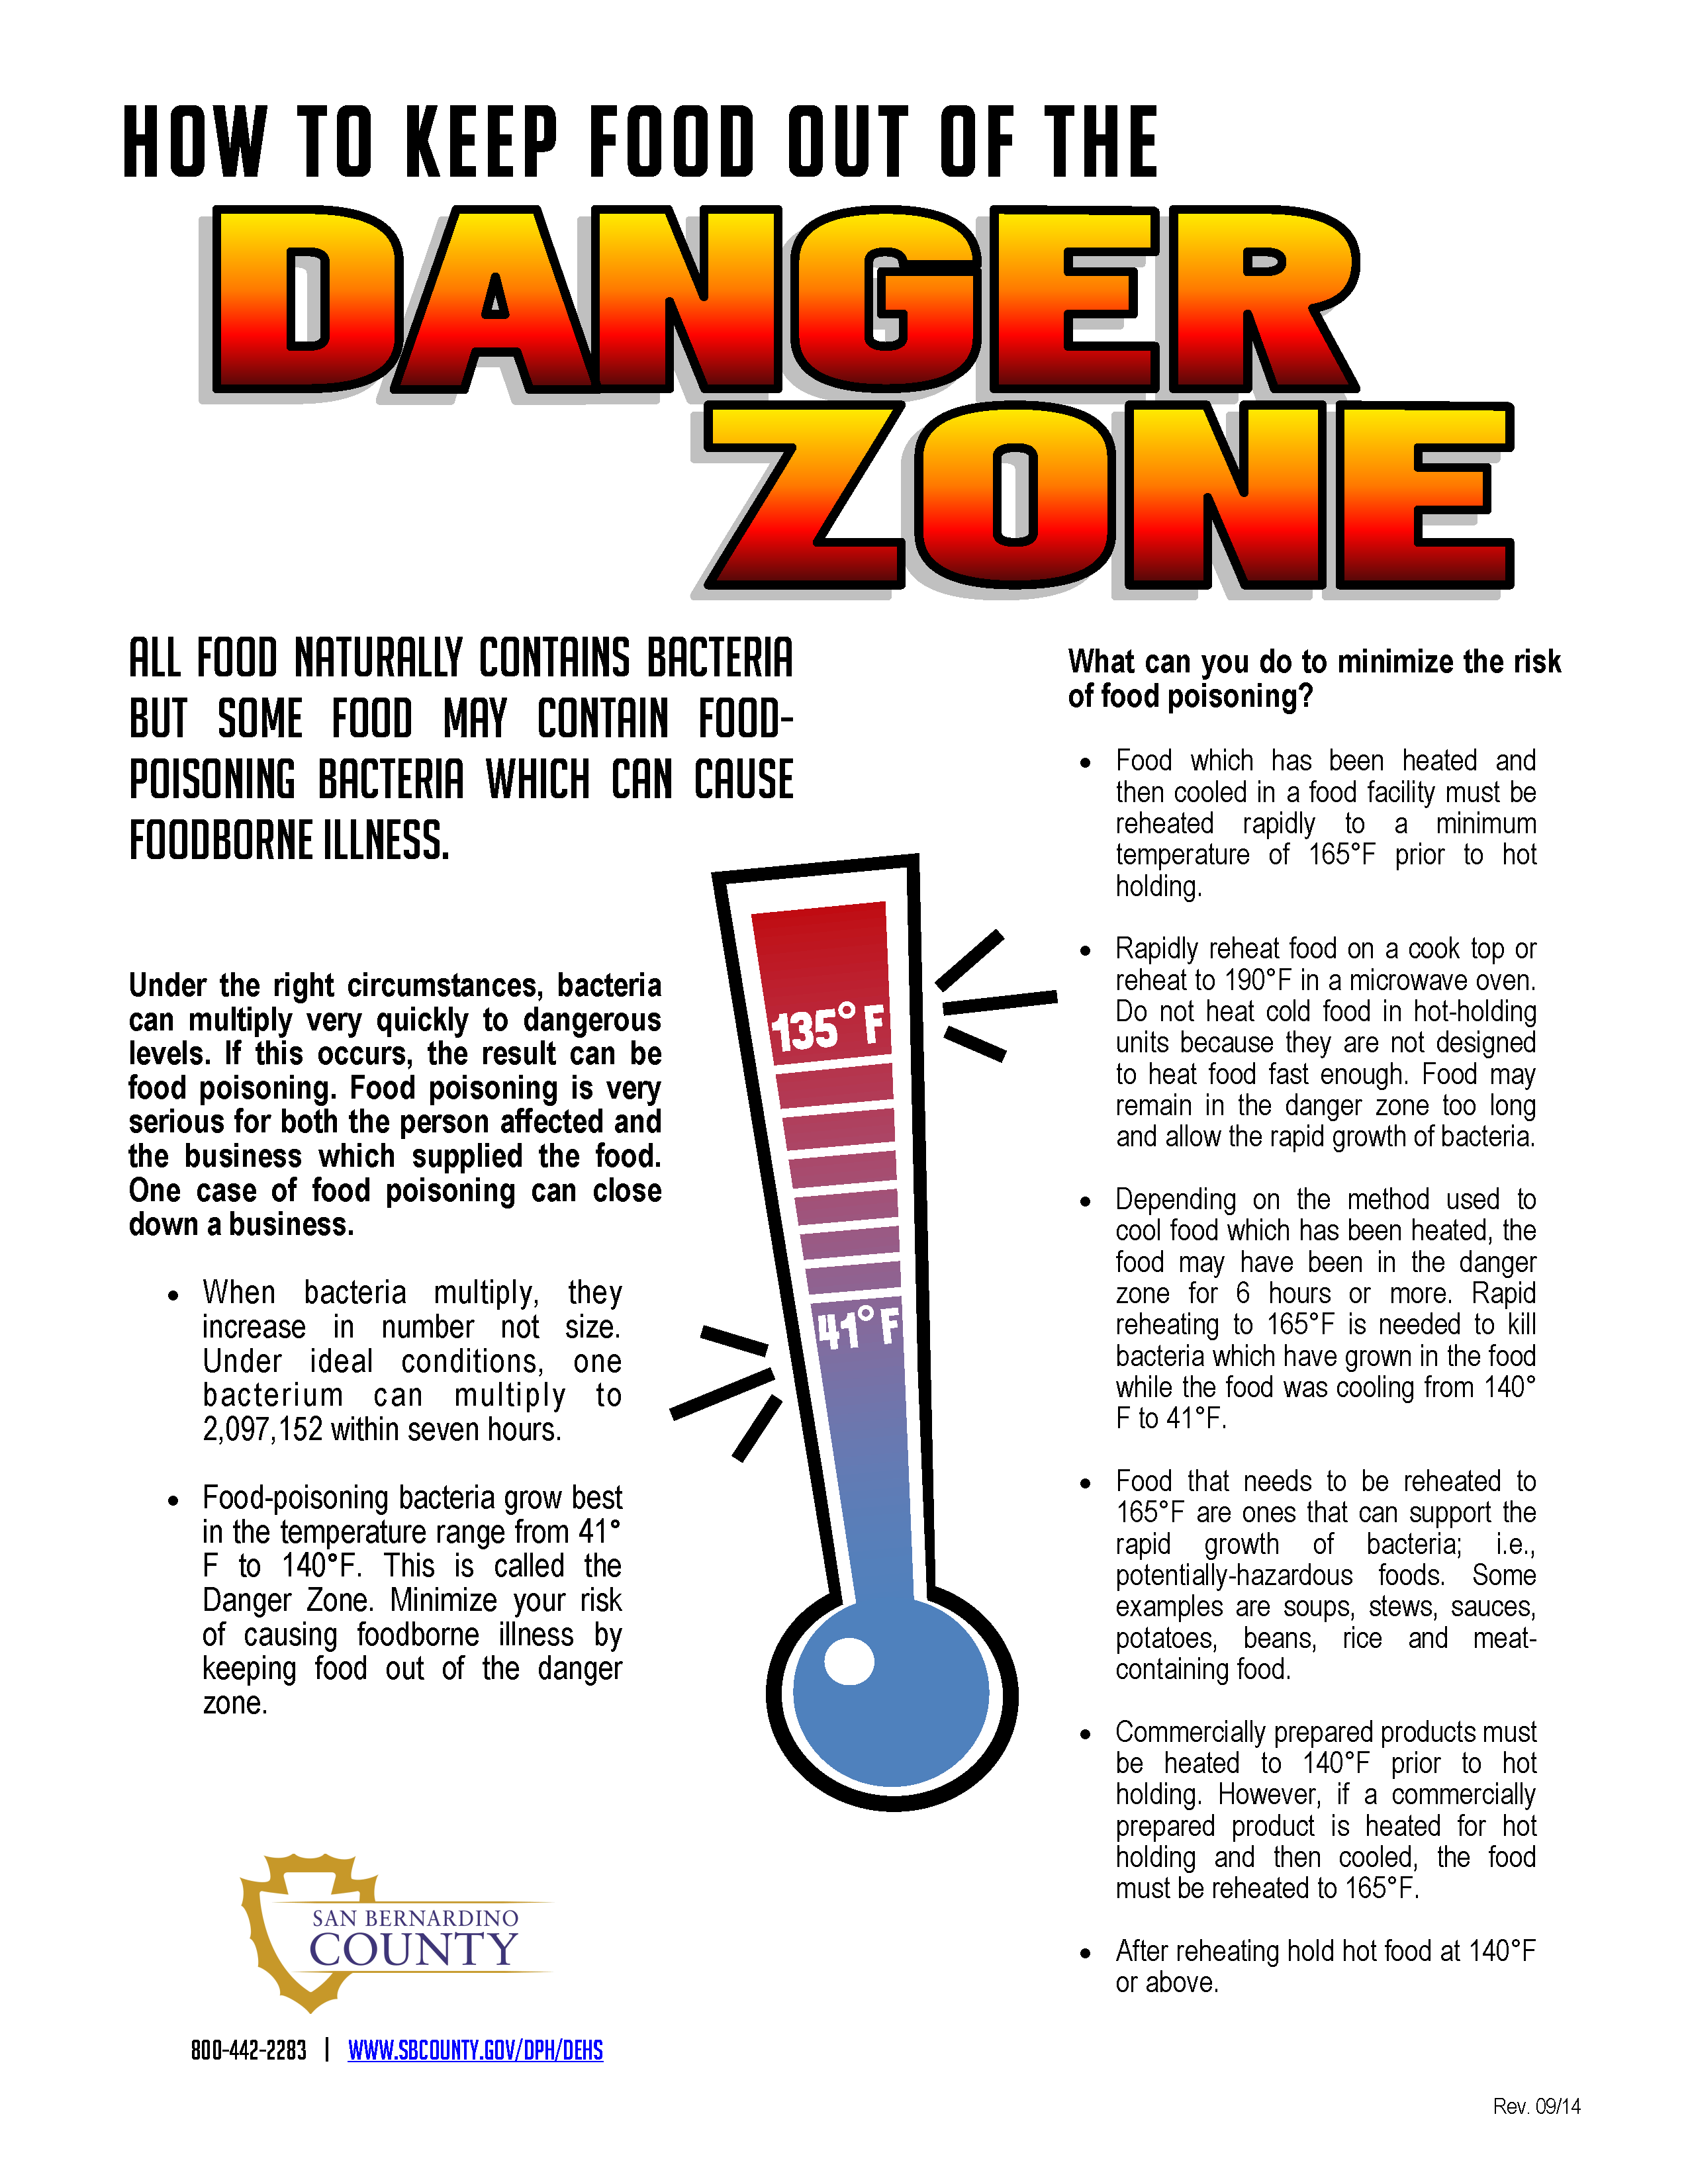 Do You Know How To Keep Your Food Out Of The Dangerzone